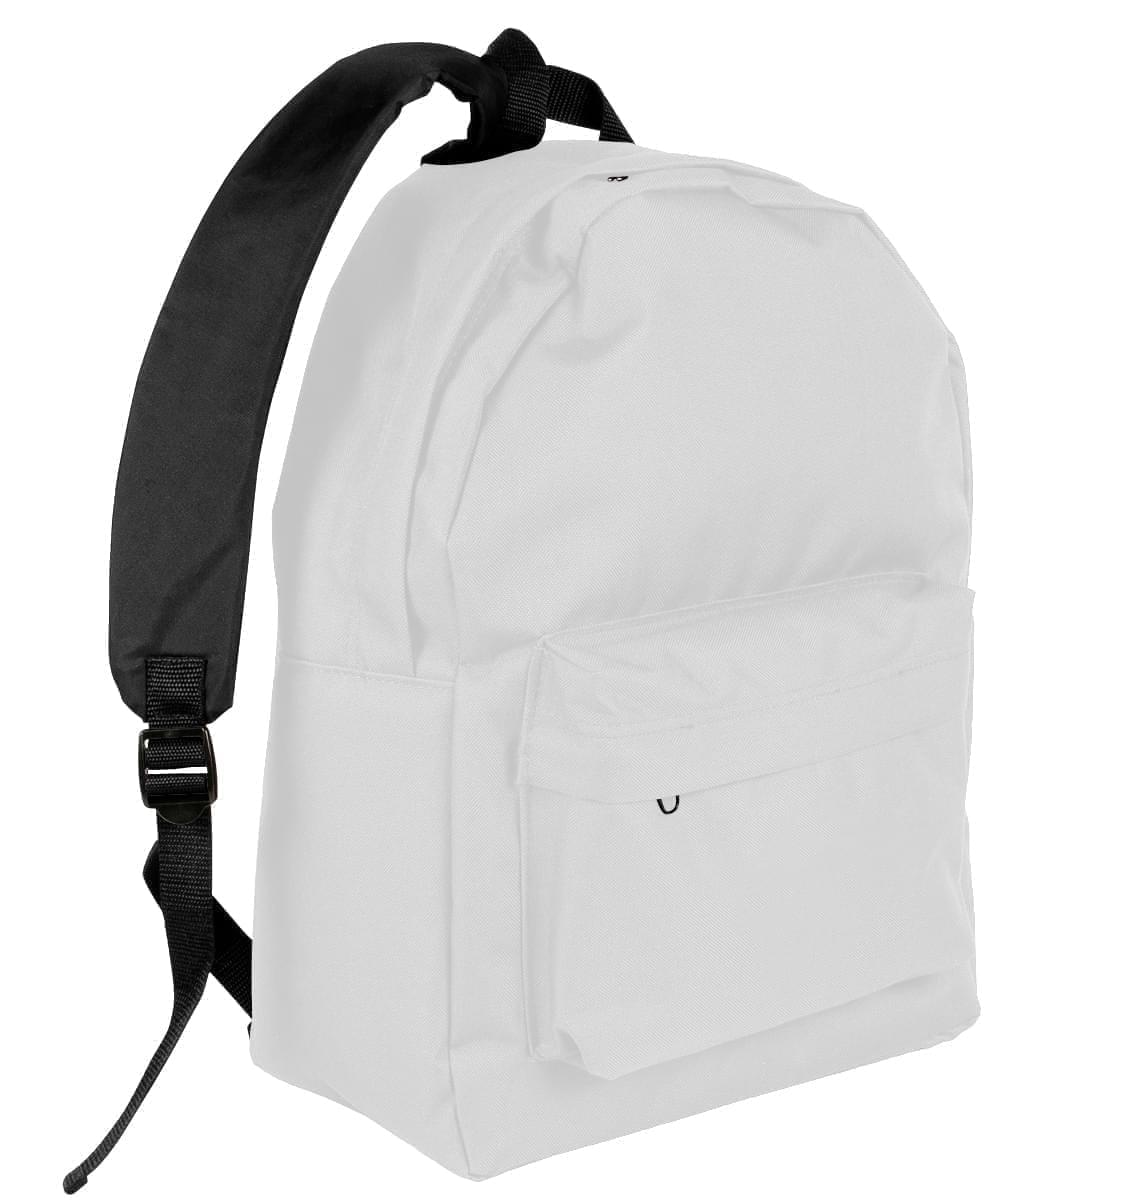 USA Made Nylon Poly Backpack Knapsacks, White-Black, 8960-A3R